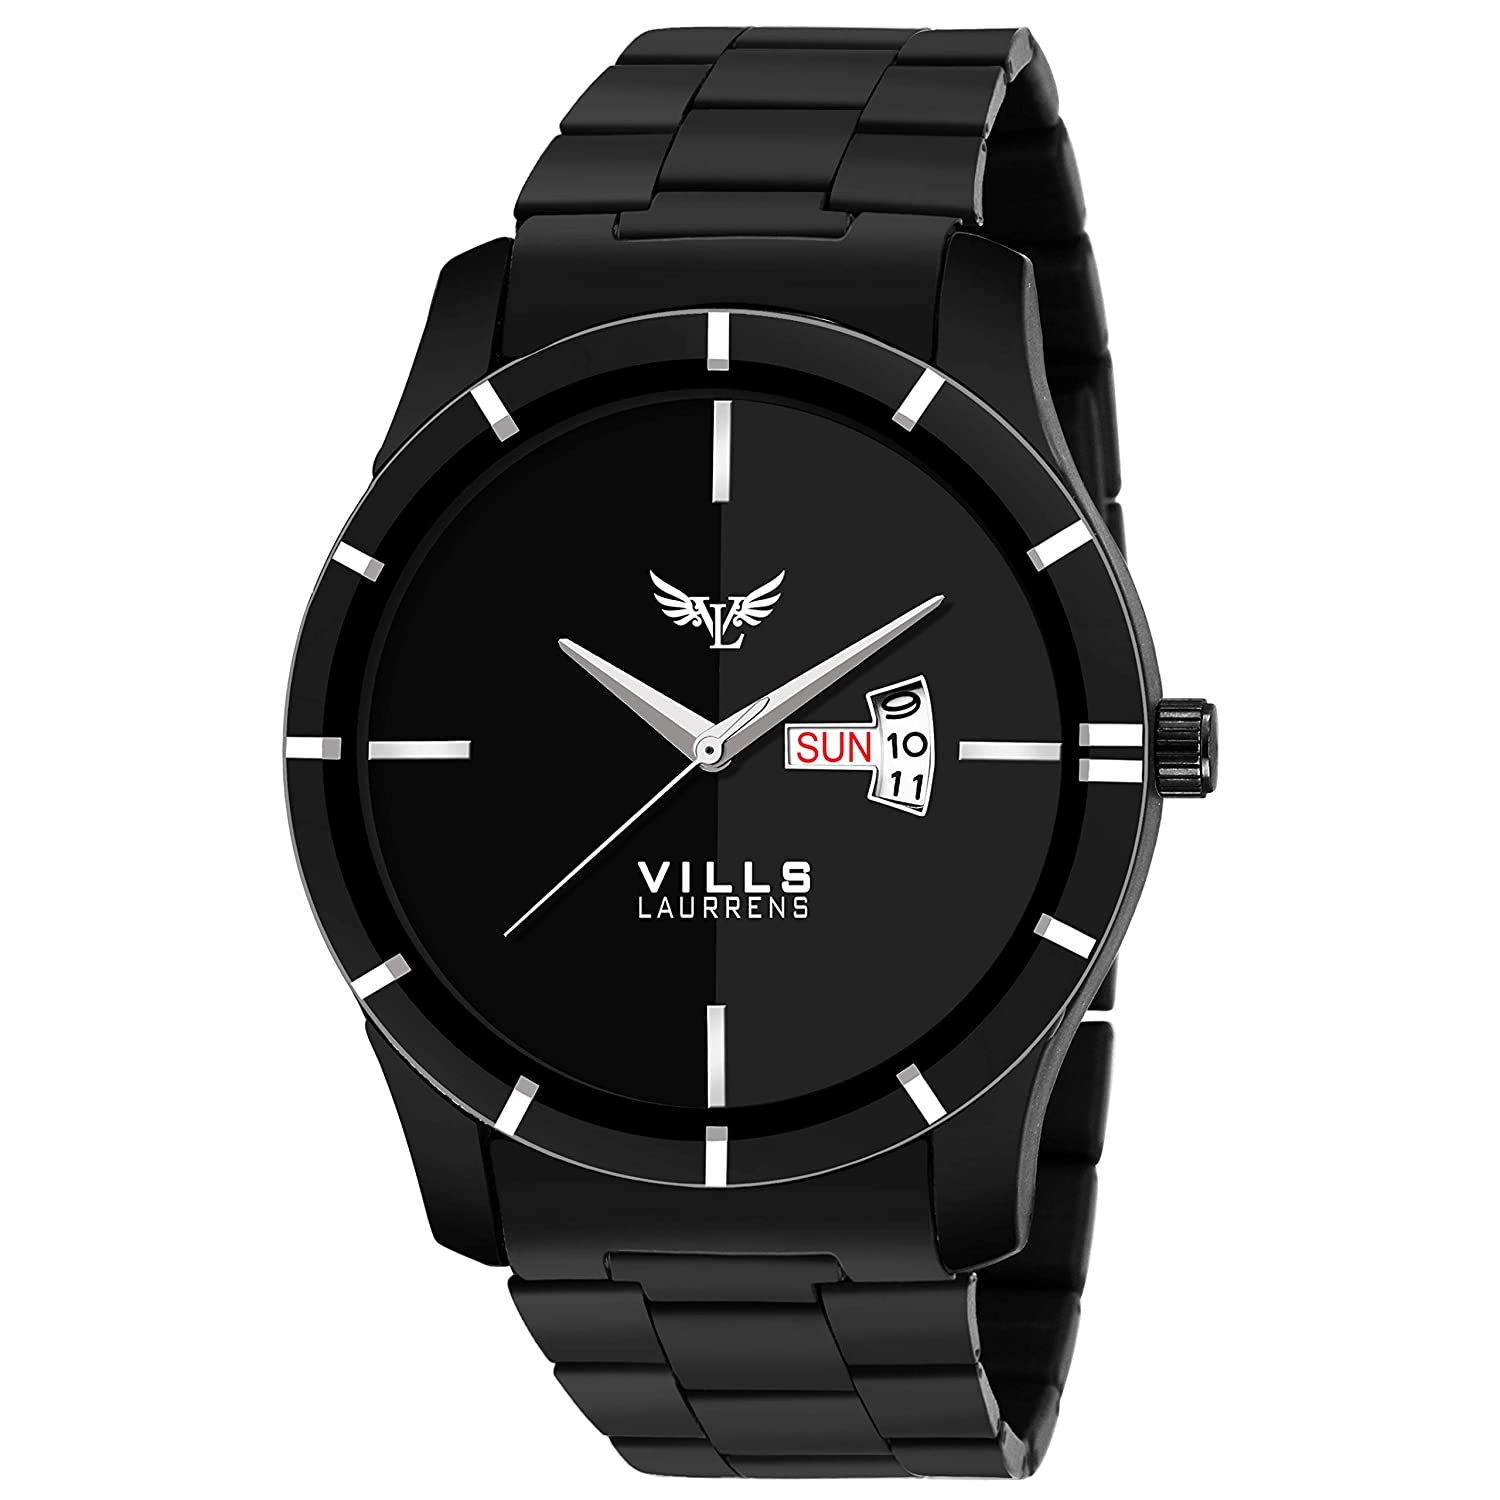 Vills Laurrens VL-1114 Stunning Black Day and Date Series Watch for Men and Boys